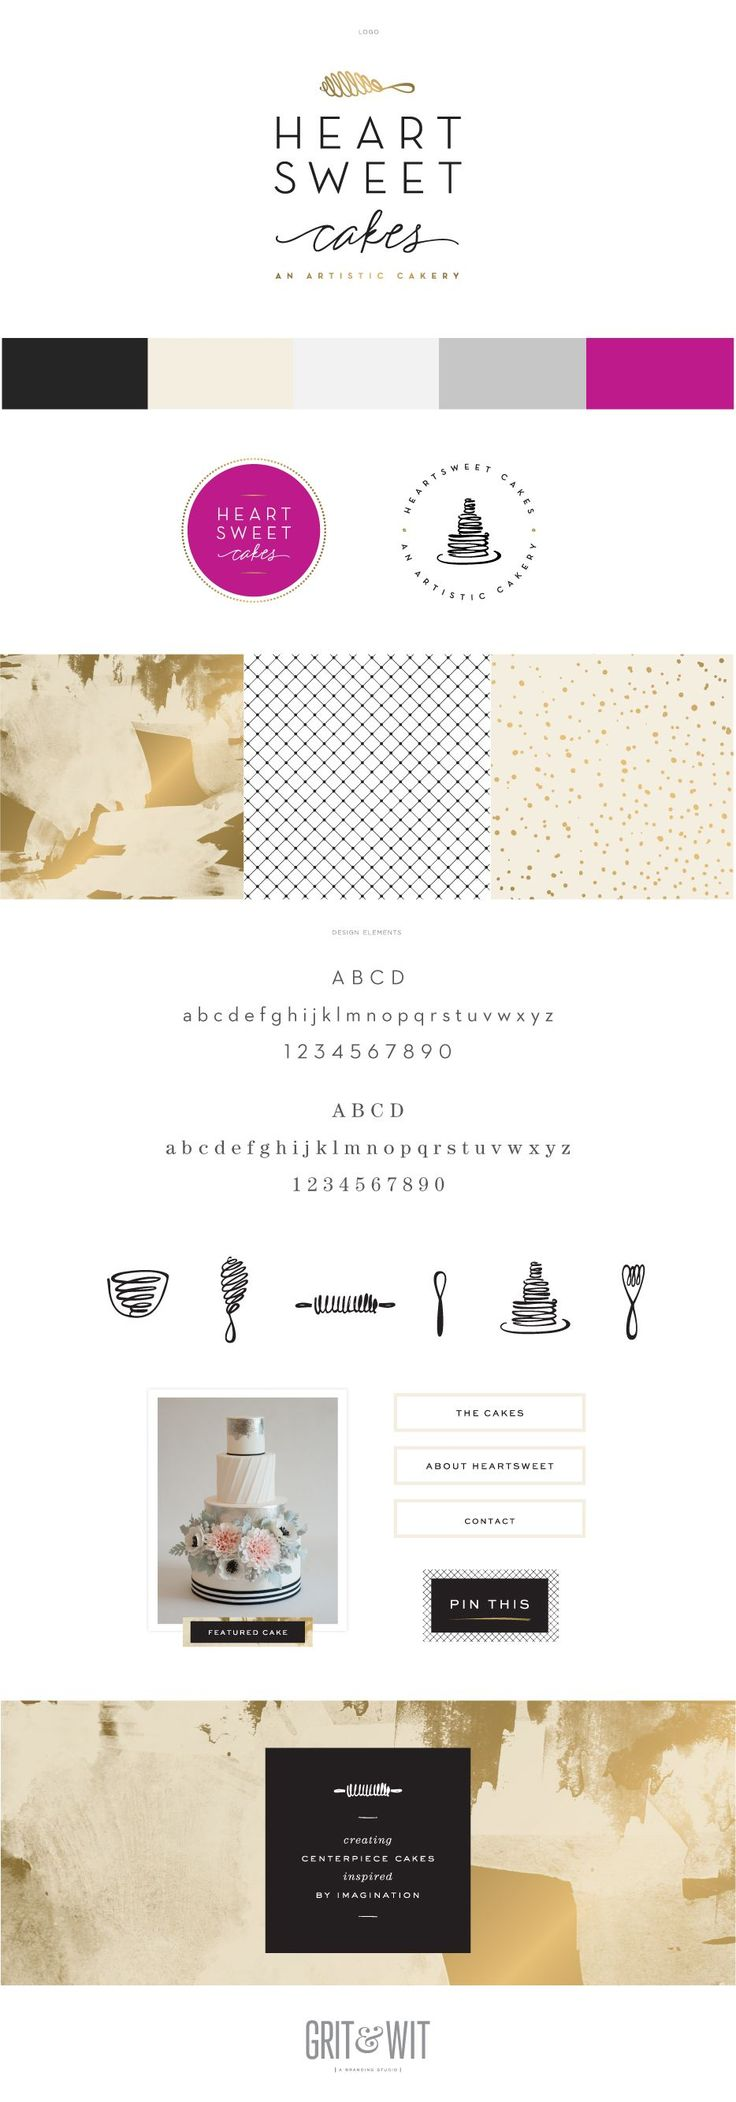 Branding and website design by the kind and talented Ann Parker with Grit & Wit!